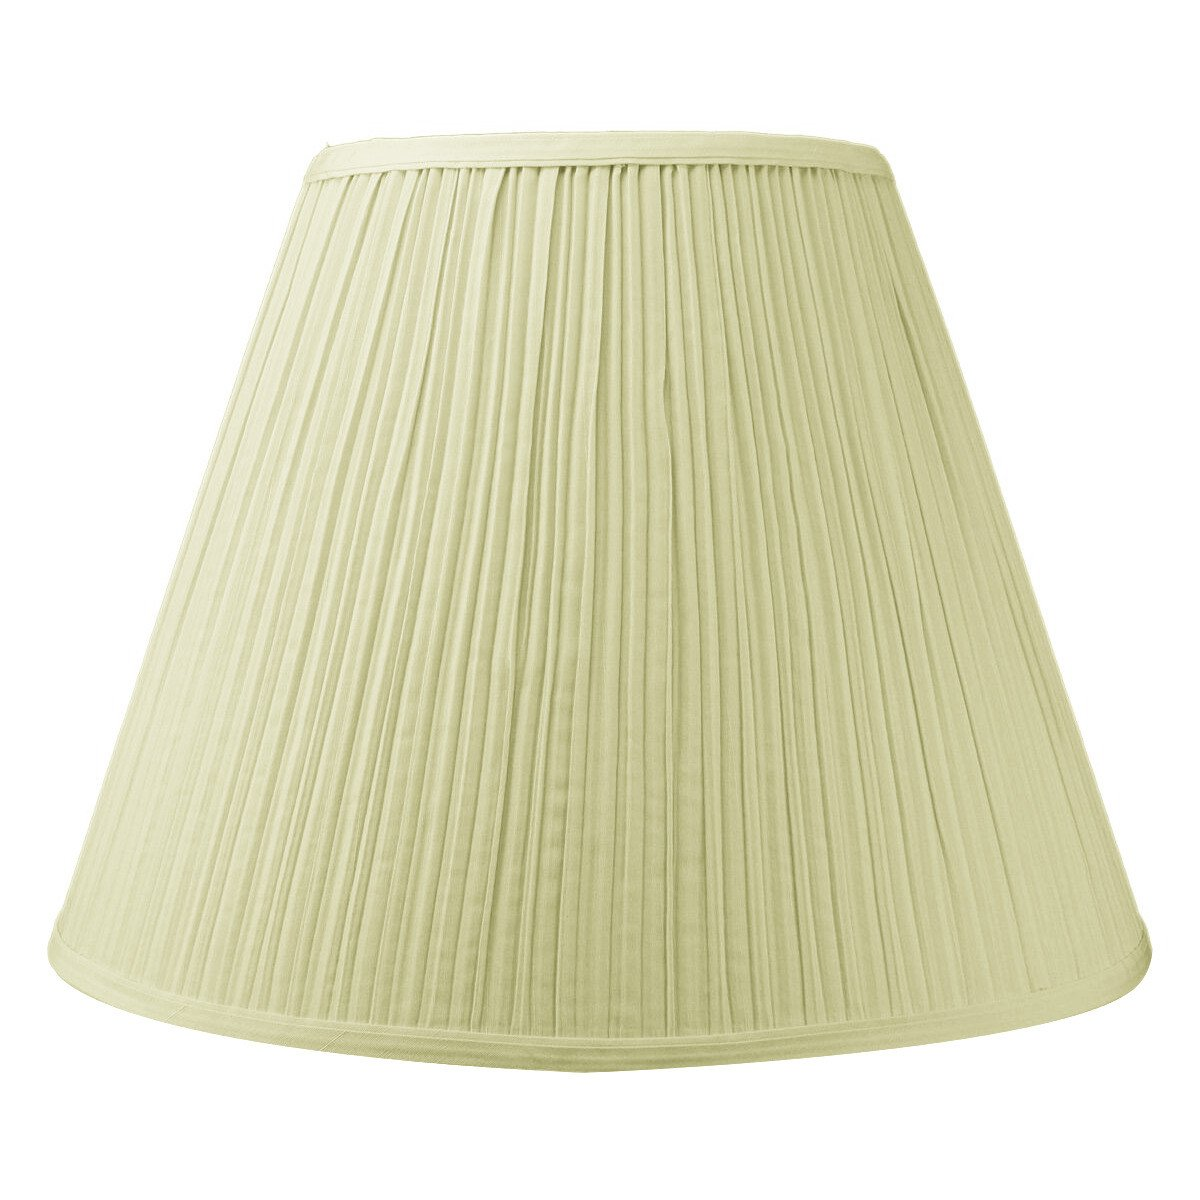 8x16x12 Empire Hardback Lampshade Egg Shell Mushroom Pleat with Brass Spider fitter By Home Concept - Perfect for table lamps and some desk lamps -Medium, Egg Shell